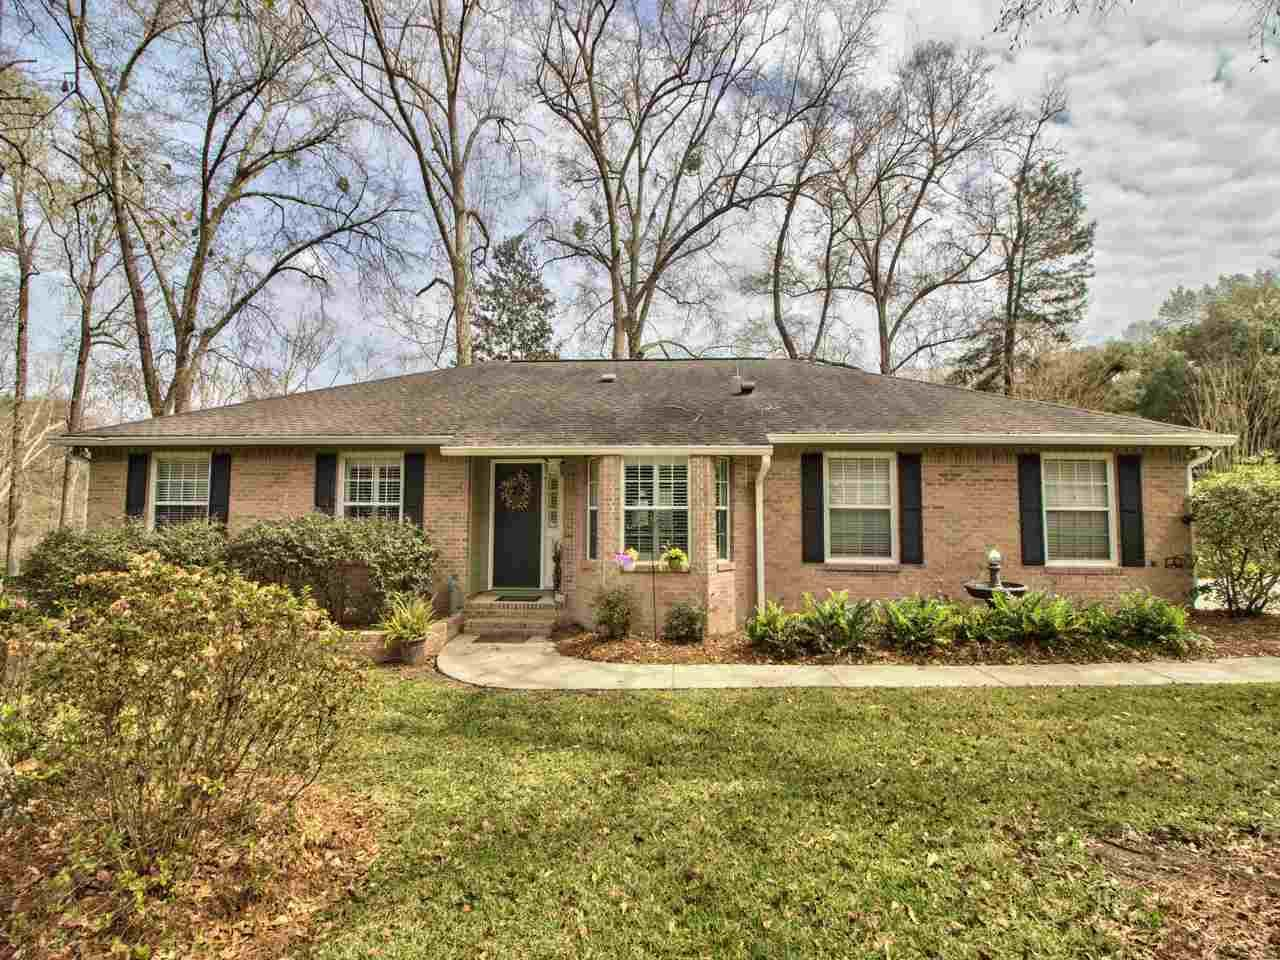 Photo of 1402 Devonshire Court, TALLAHASSEE, FL 32317 (MLS # 316150)